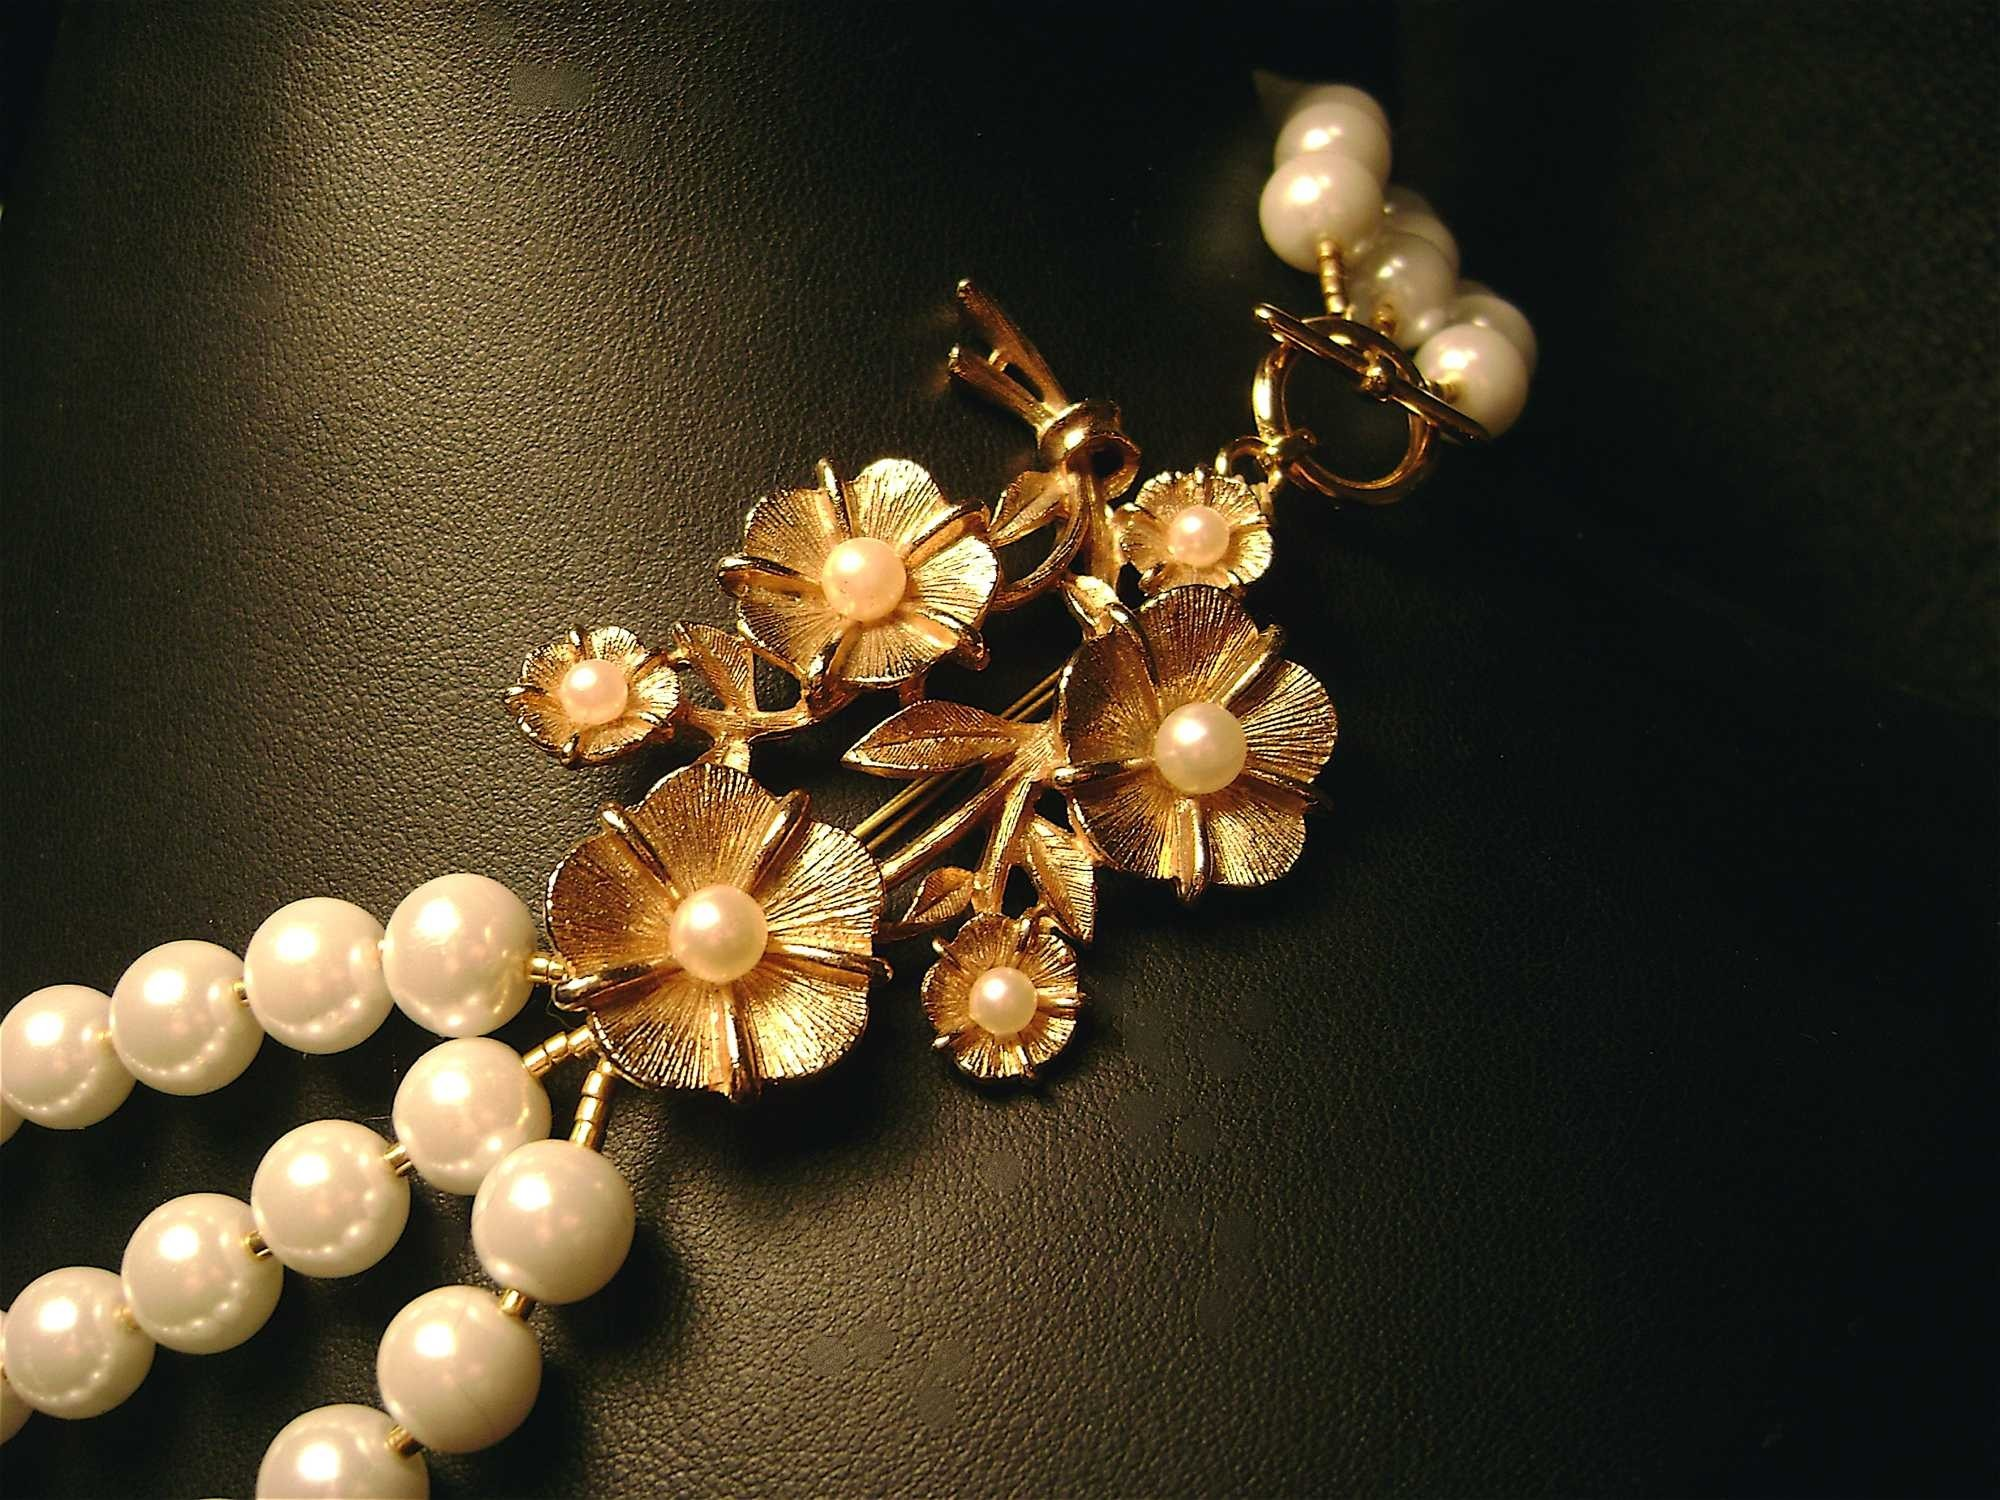 Flowers & Decor, Jewelry, Necklaces, Vintage, Flower, Elegant, Necklace, Pearl, Etsy, Handmade, Damselle jewelry